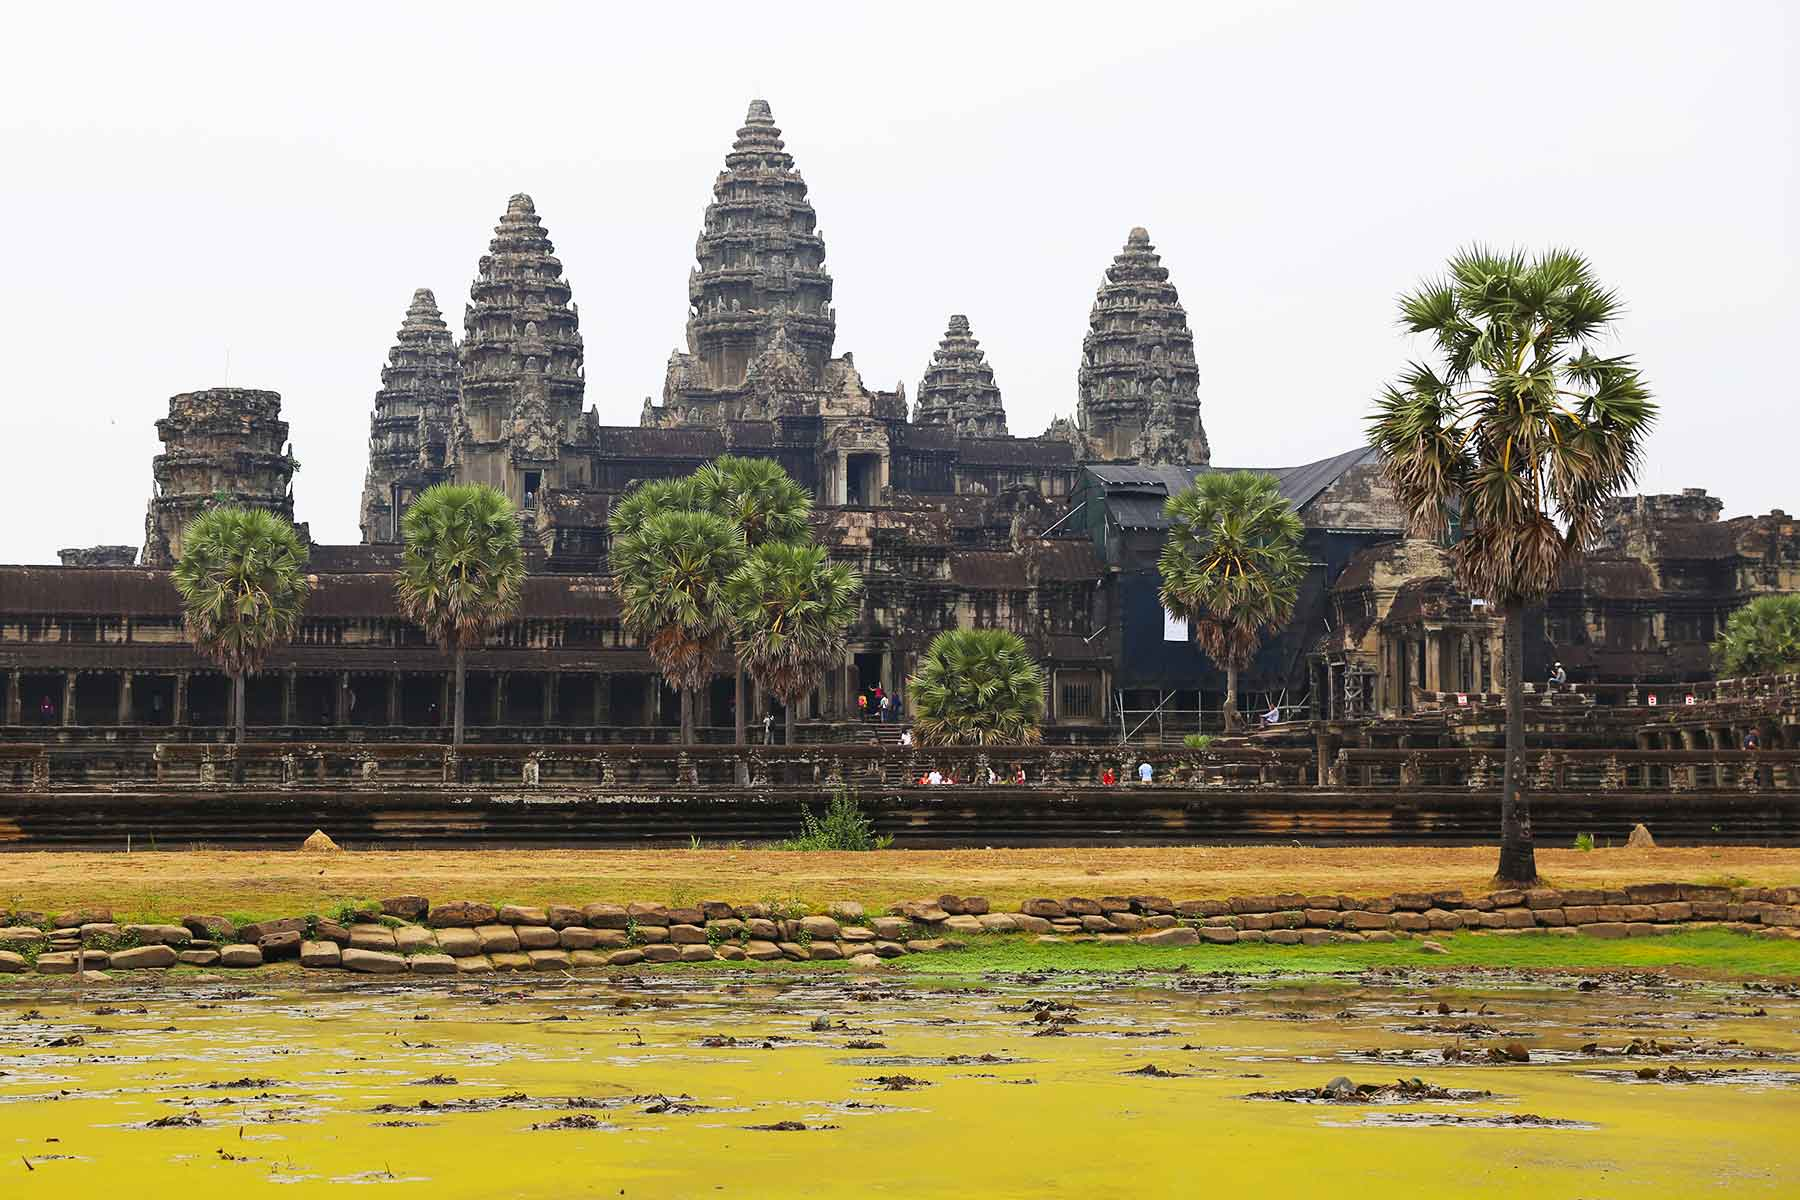 Angkor Wat Cambodia - Dr Steven Andrew Martin - Khmer Historical Research Journal